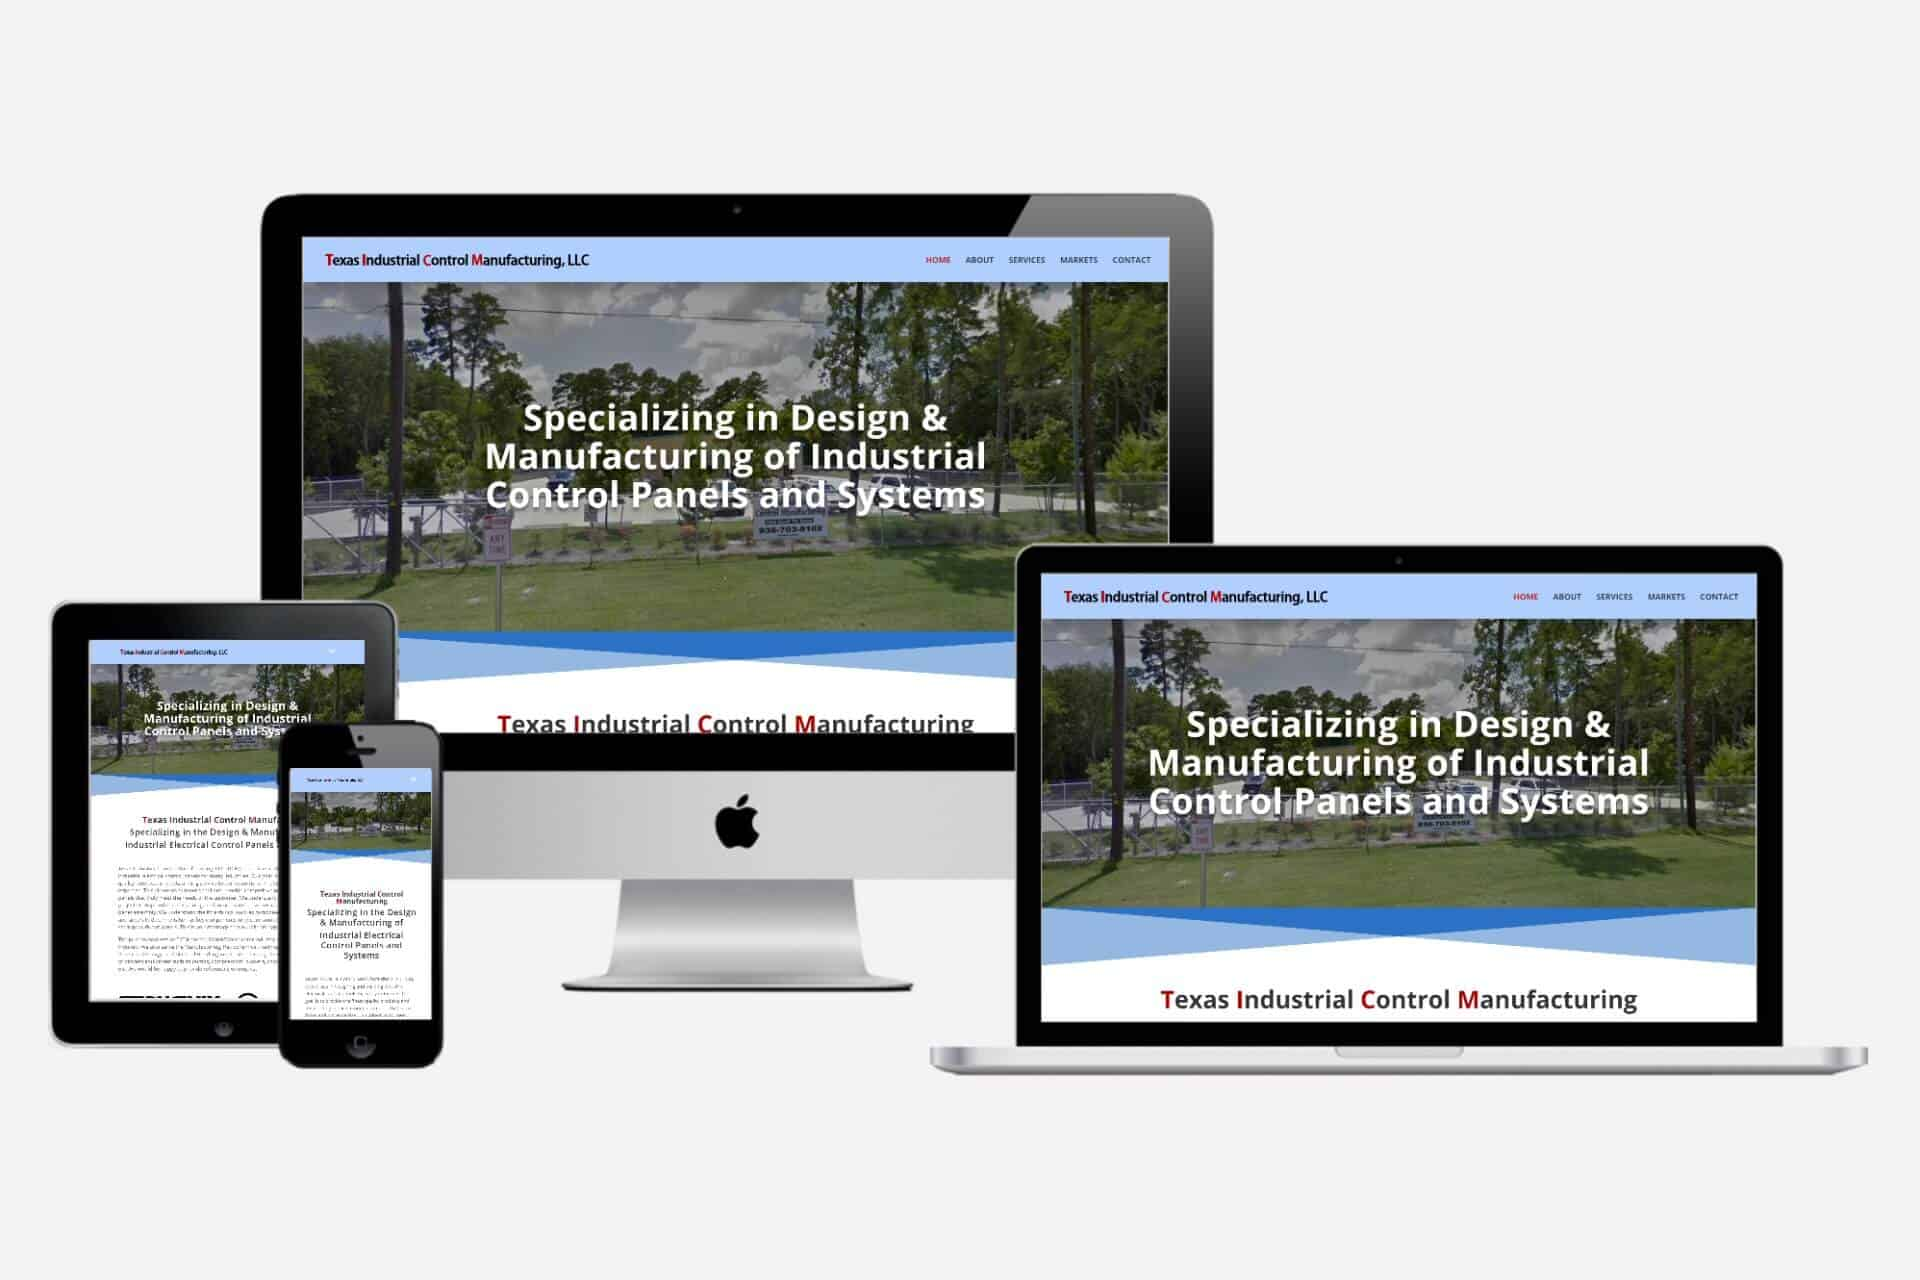 Texas Industrial Control Manufacturing Website Design by WizardsWebs Design LLC